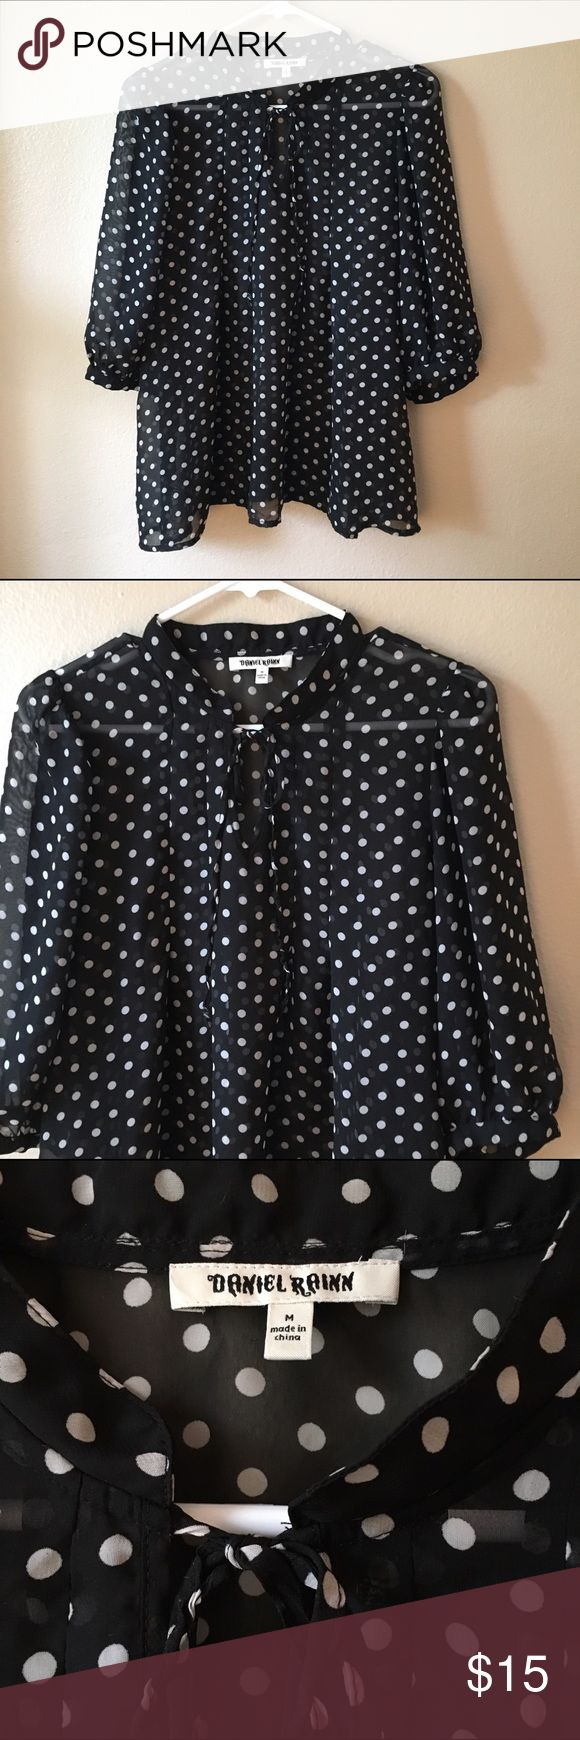 Polka Dot blouse Loose fit blouse with polka dots pattern. Pair with your fur vest and black leather jeans. Tops Blouses